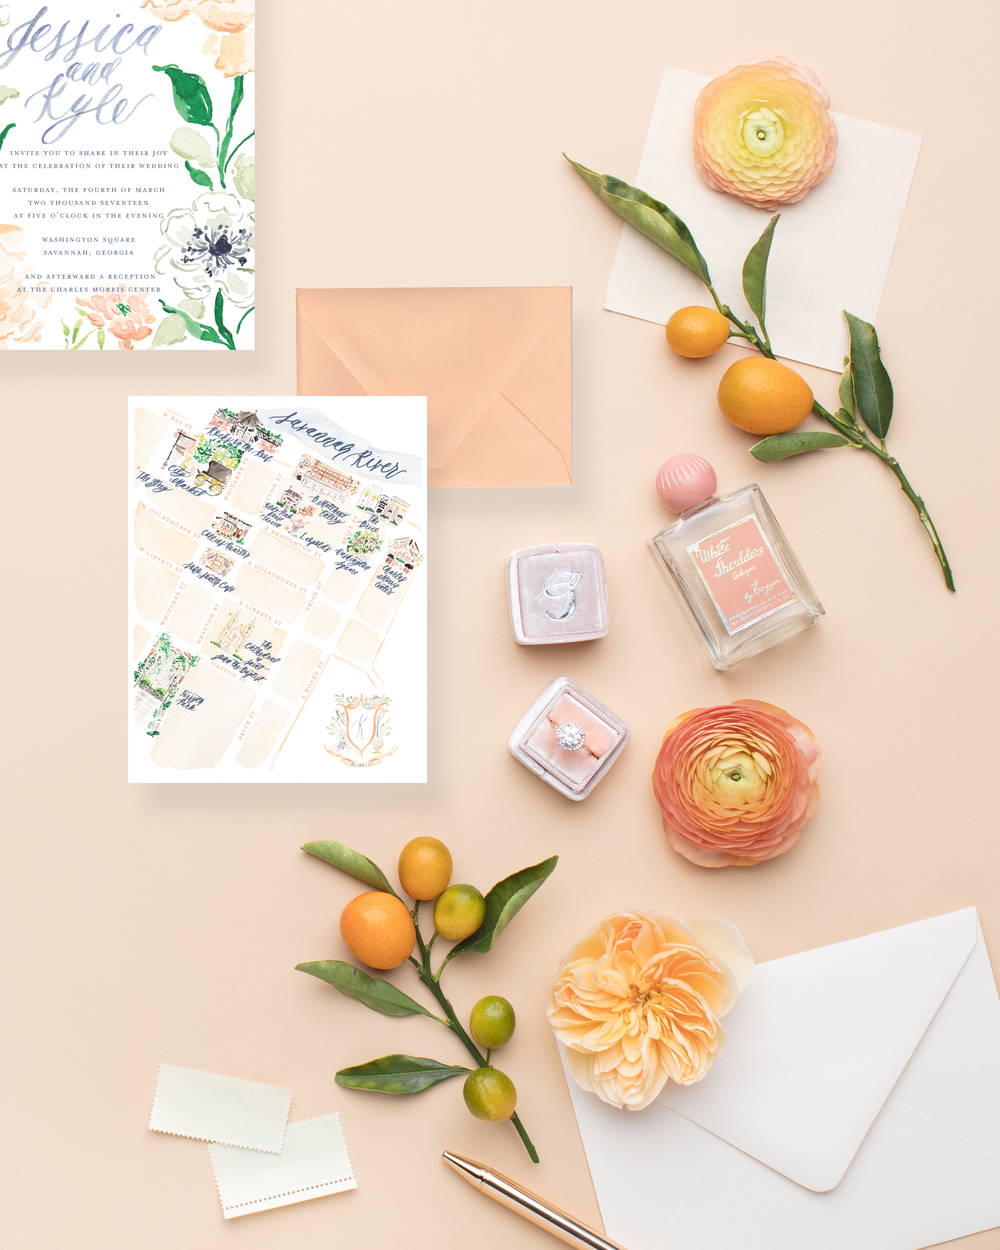 Styled Stock Photos for Stationers, Calligraphers, and Designers | A collaboration with SC Stockshop and MaeMae & Co | Review by Simply Jessica Marie | Watercolor Floral Wedding Invitations for a Savannah Wedding | Peach and Dusty Blue Watercolor Wedding Invitations